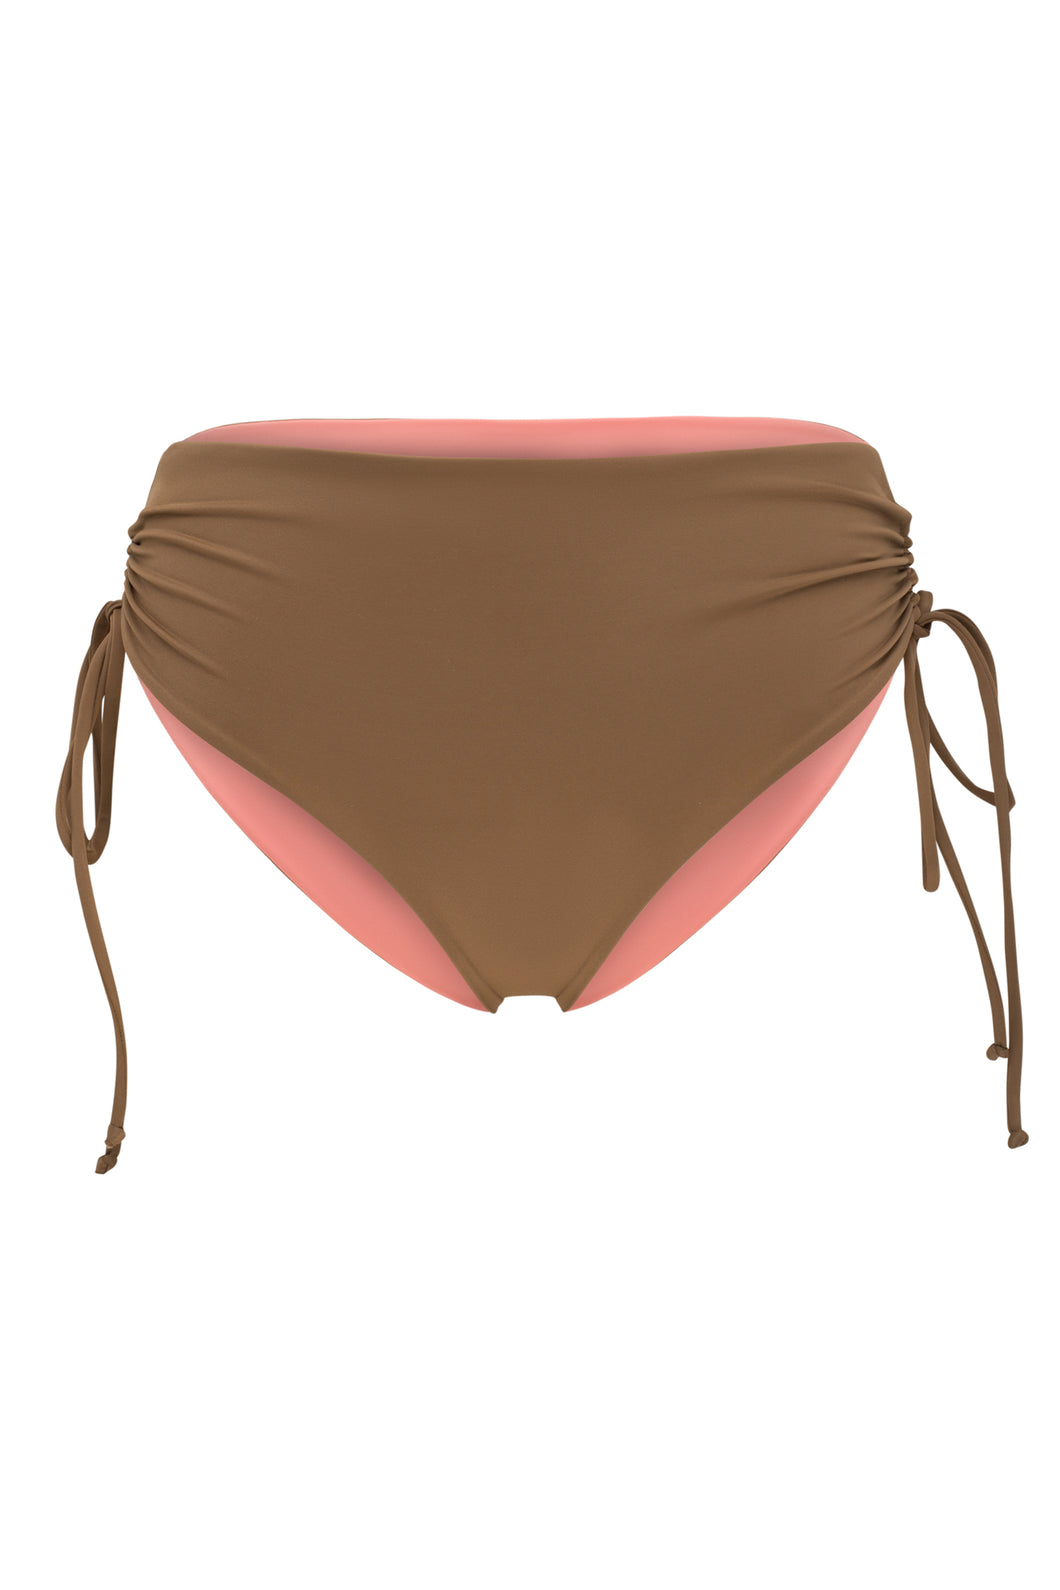 Ozero Swimwear Vida Bikini Bottom in Mocha color, designed in Kuala Lumpur from sustainable fabrics.